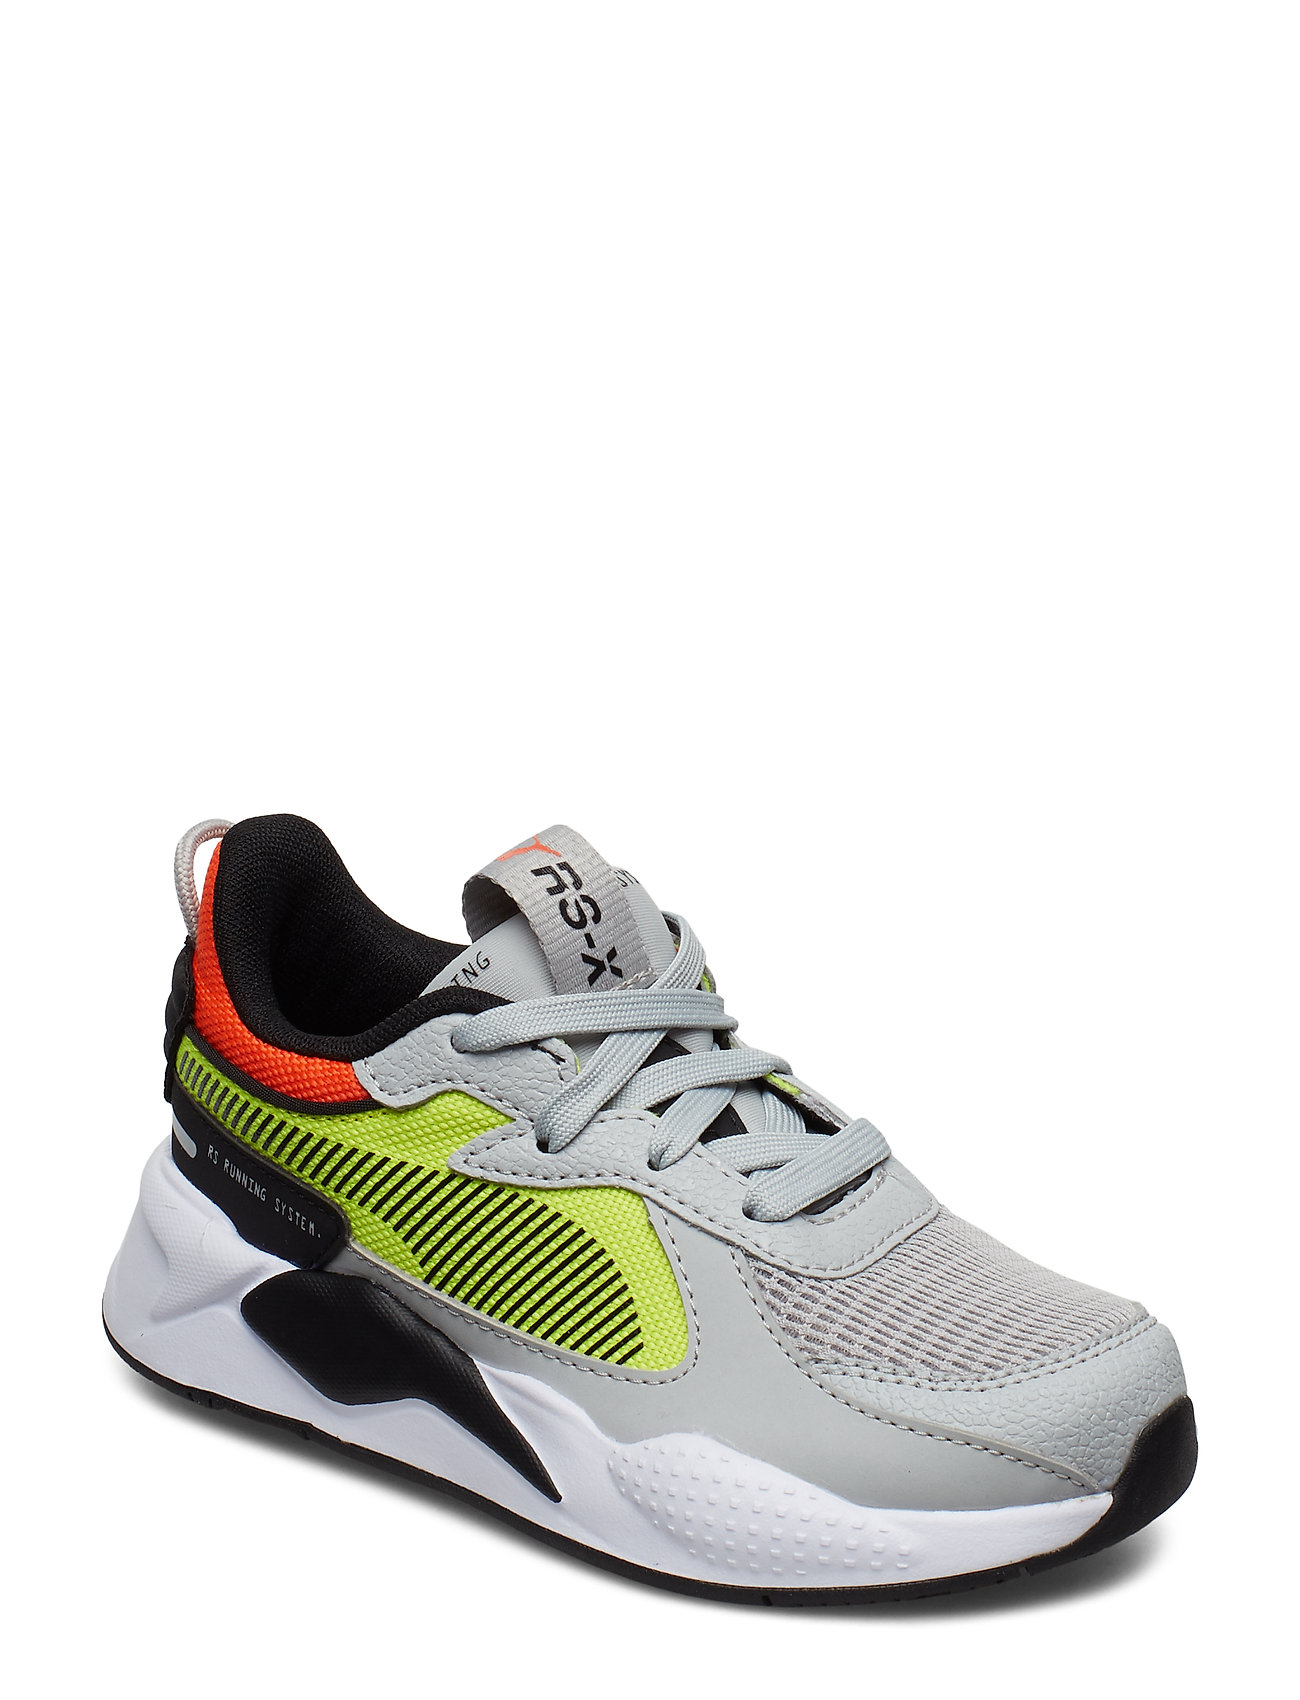 PUMA RS-X Hard Drive PS - HIGH RISE-YELLOW ALERT